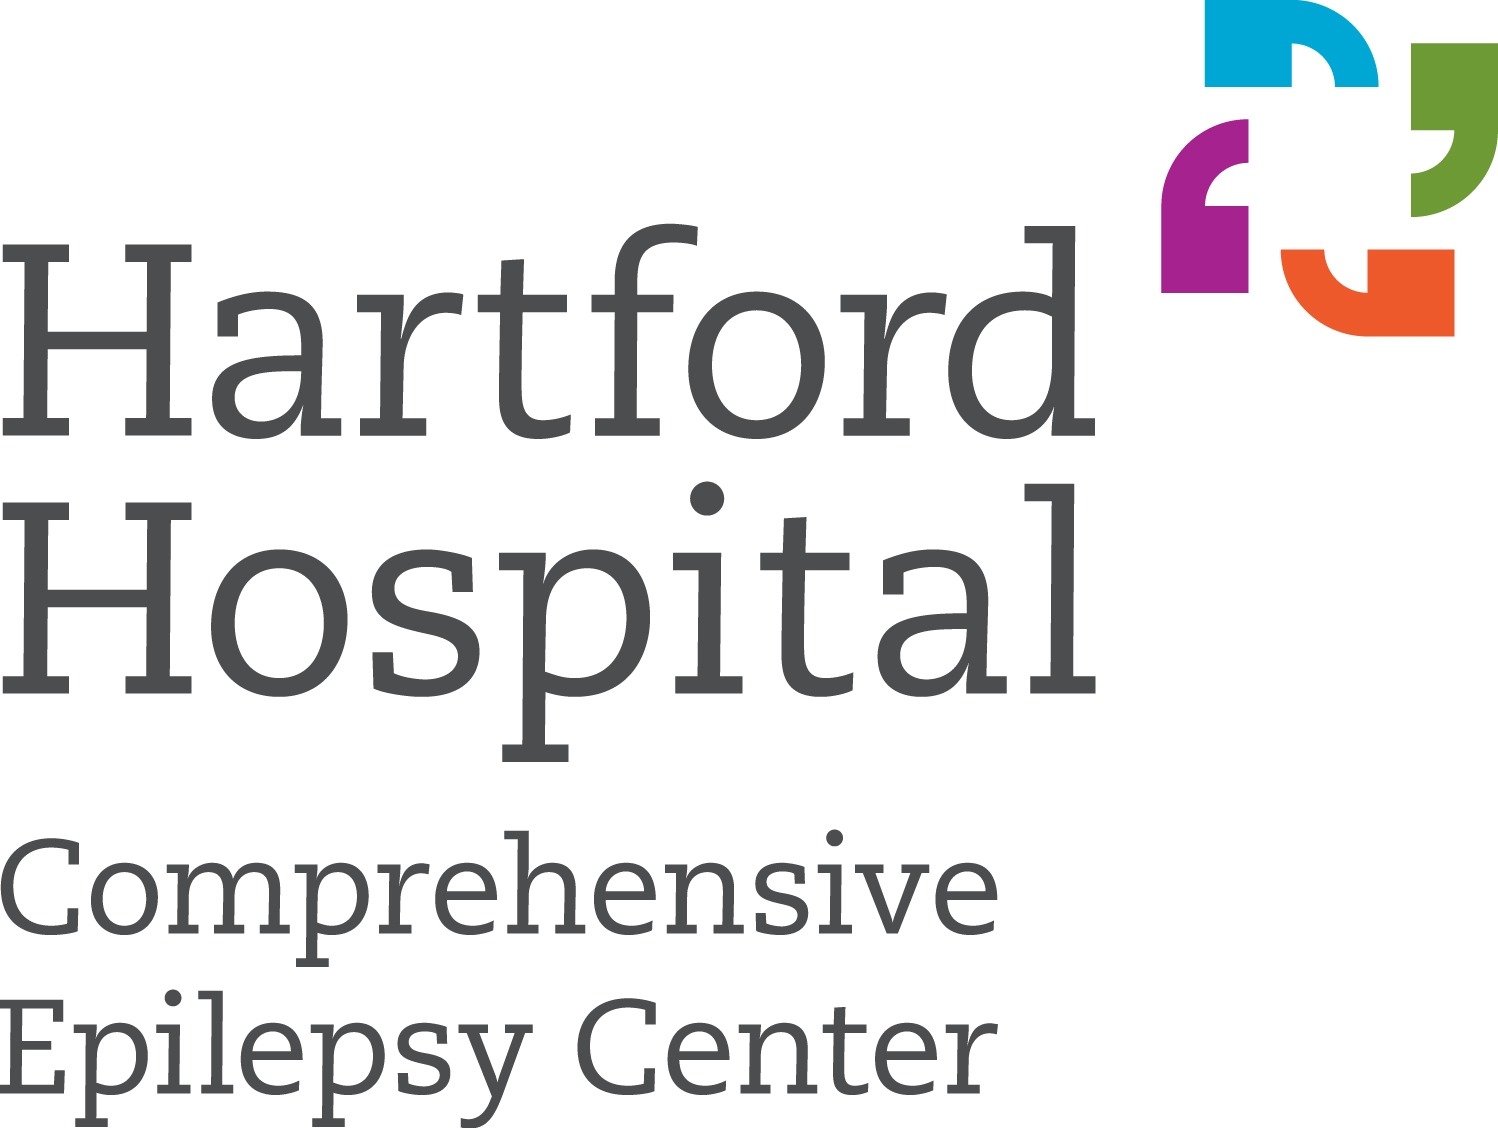 Hartford Hospital Comprehensive Epilepsy Center